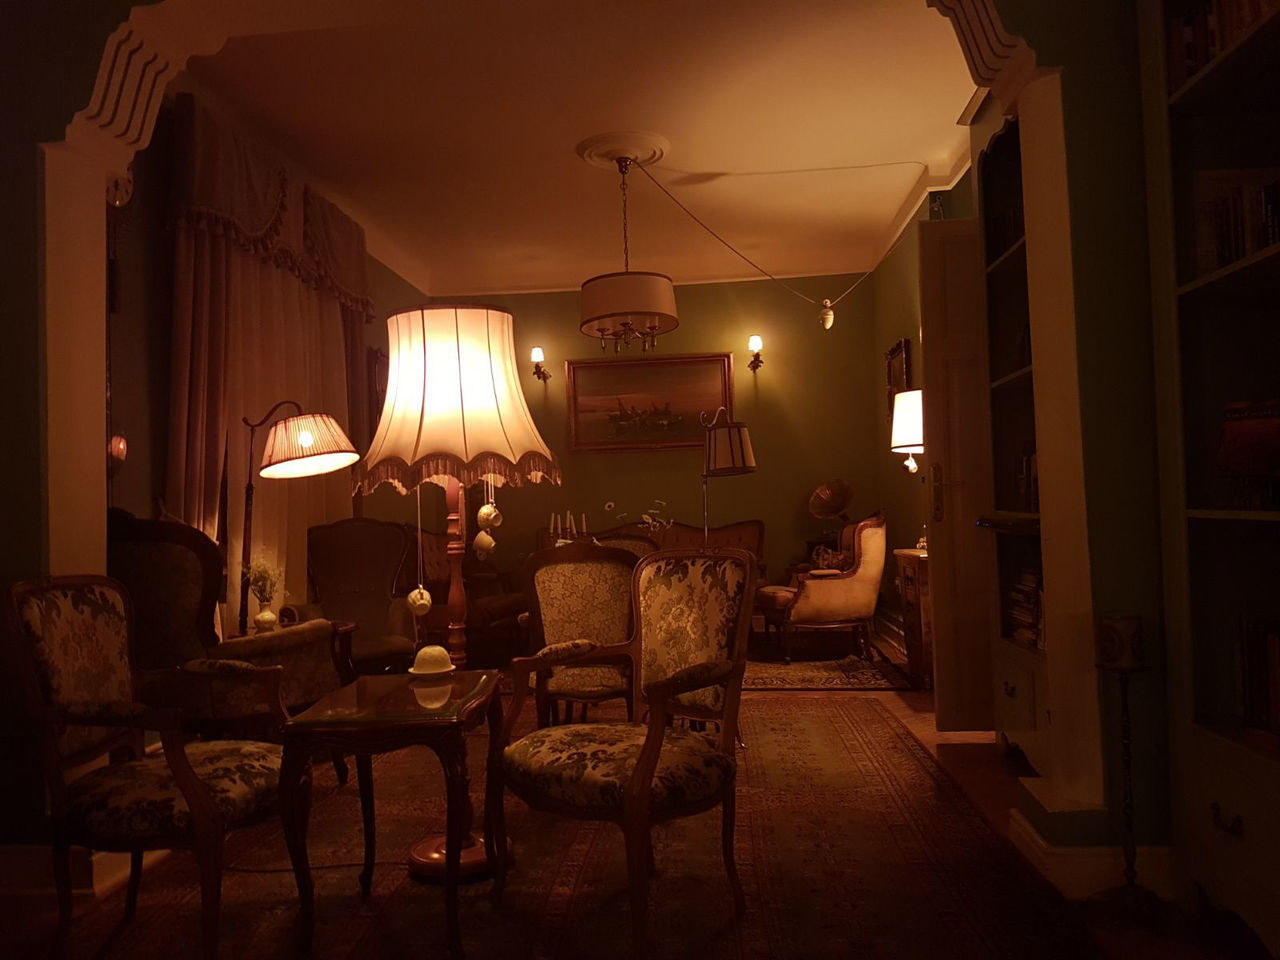 Antique Antique House Chair Home Interior Illuminated Indoors  Night No People Retro Style Table The Architect - 2017 EyeEm Awards